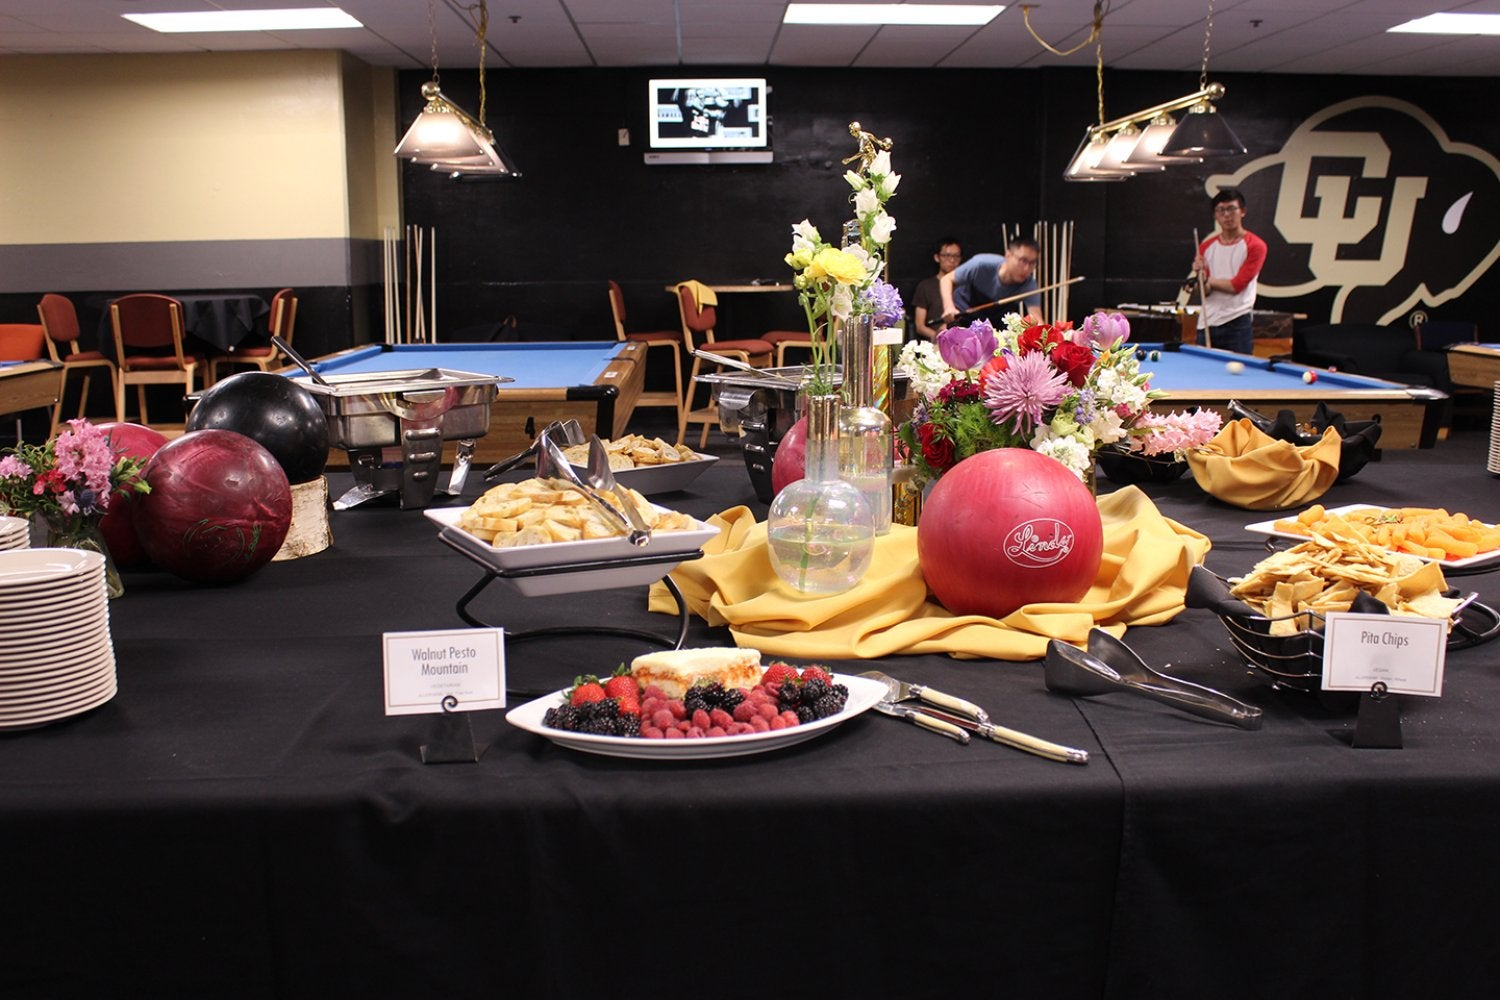 A table with food and flowers set out for the Art Walk during First Friday Buff Club